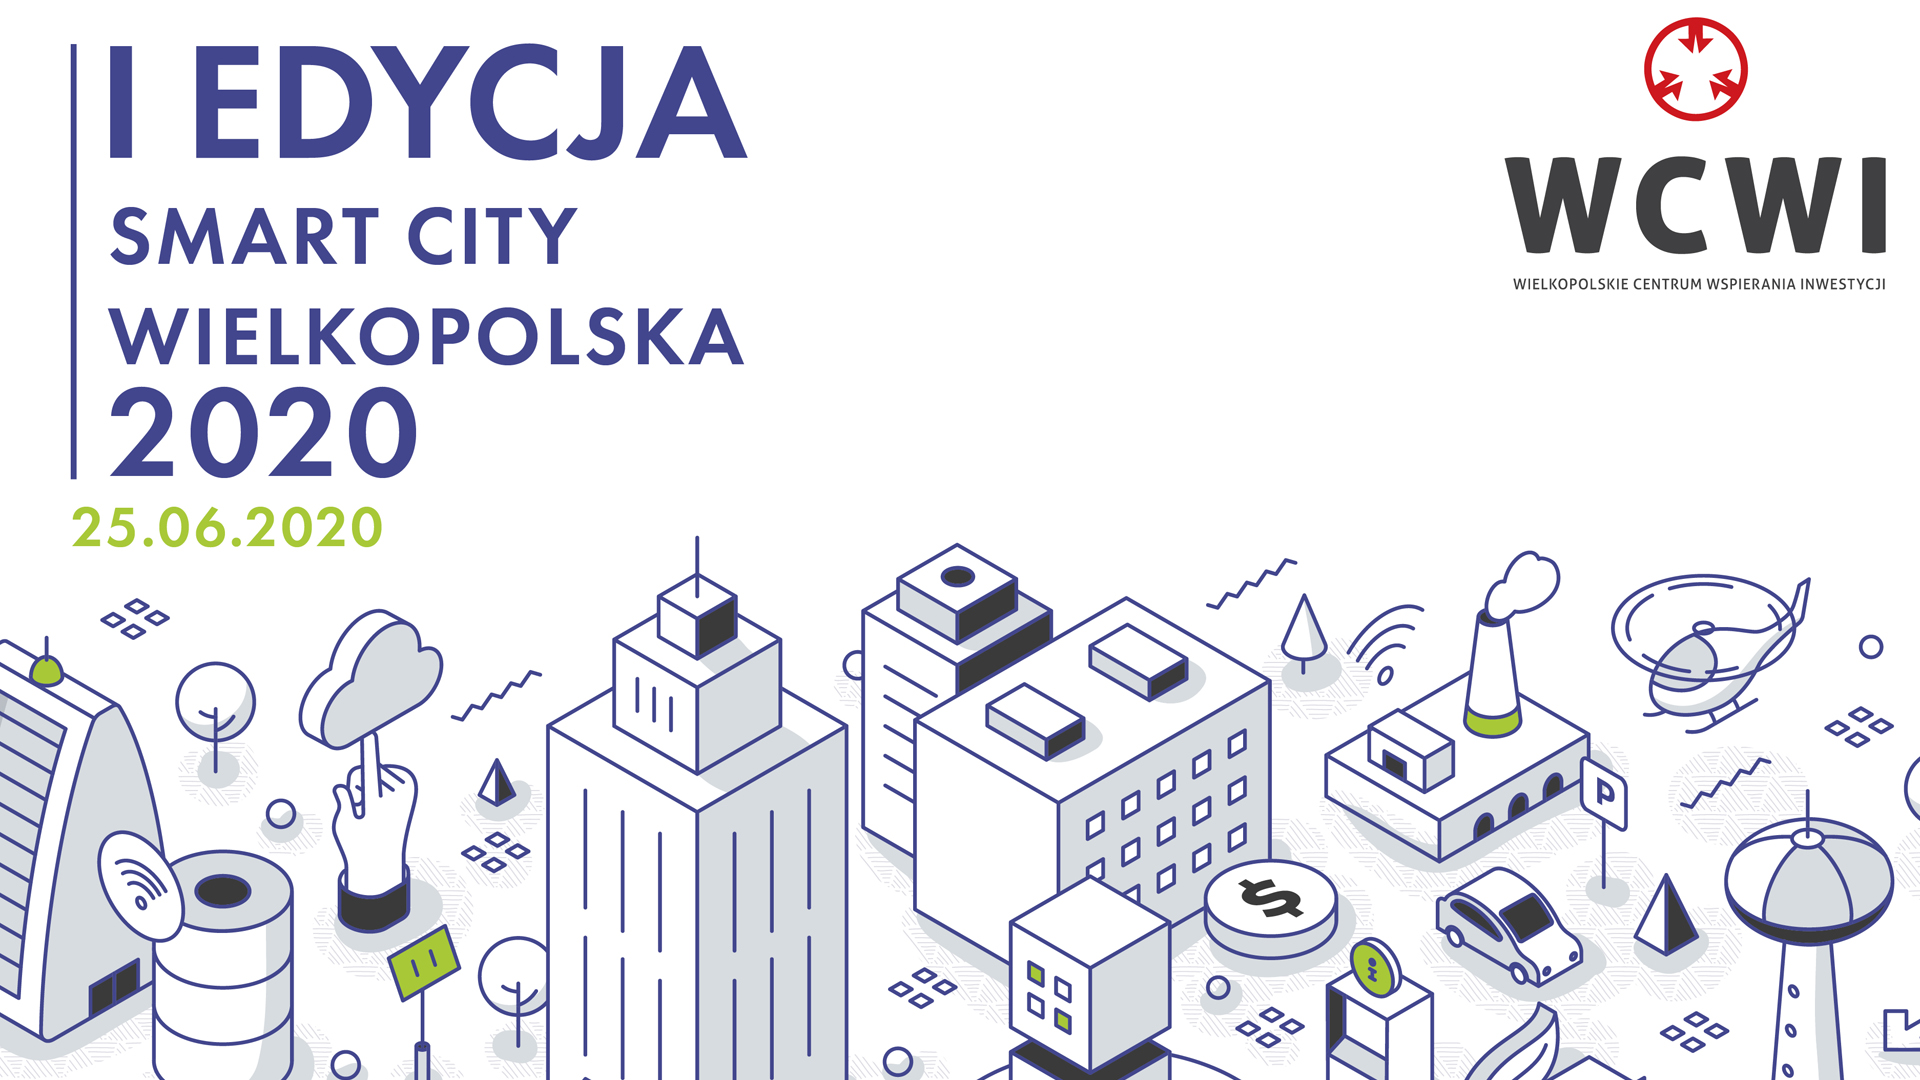 Invitation to the first edition of Smart City Wielkopolska conference